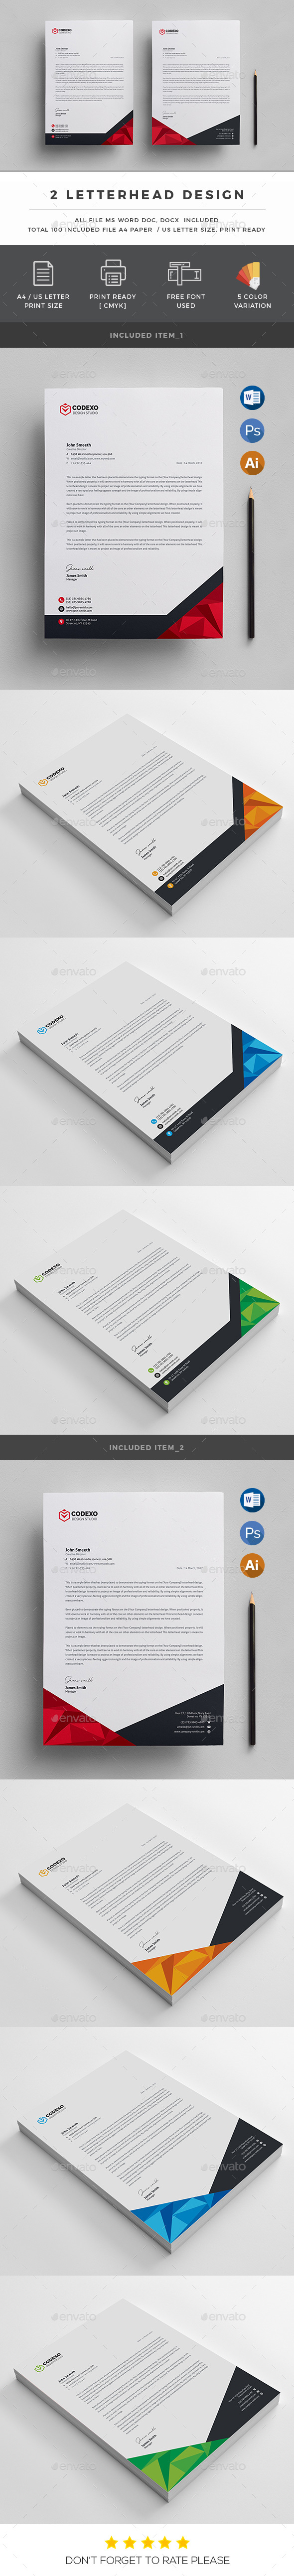 'Graphicriver